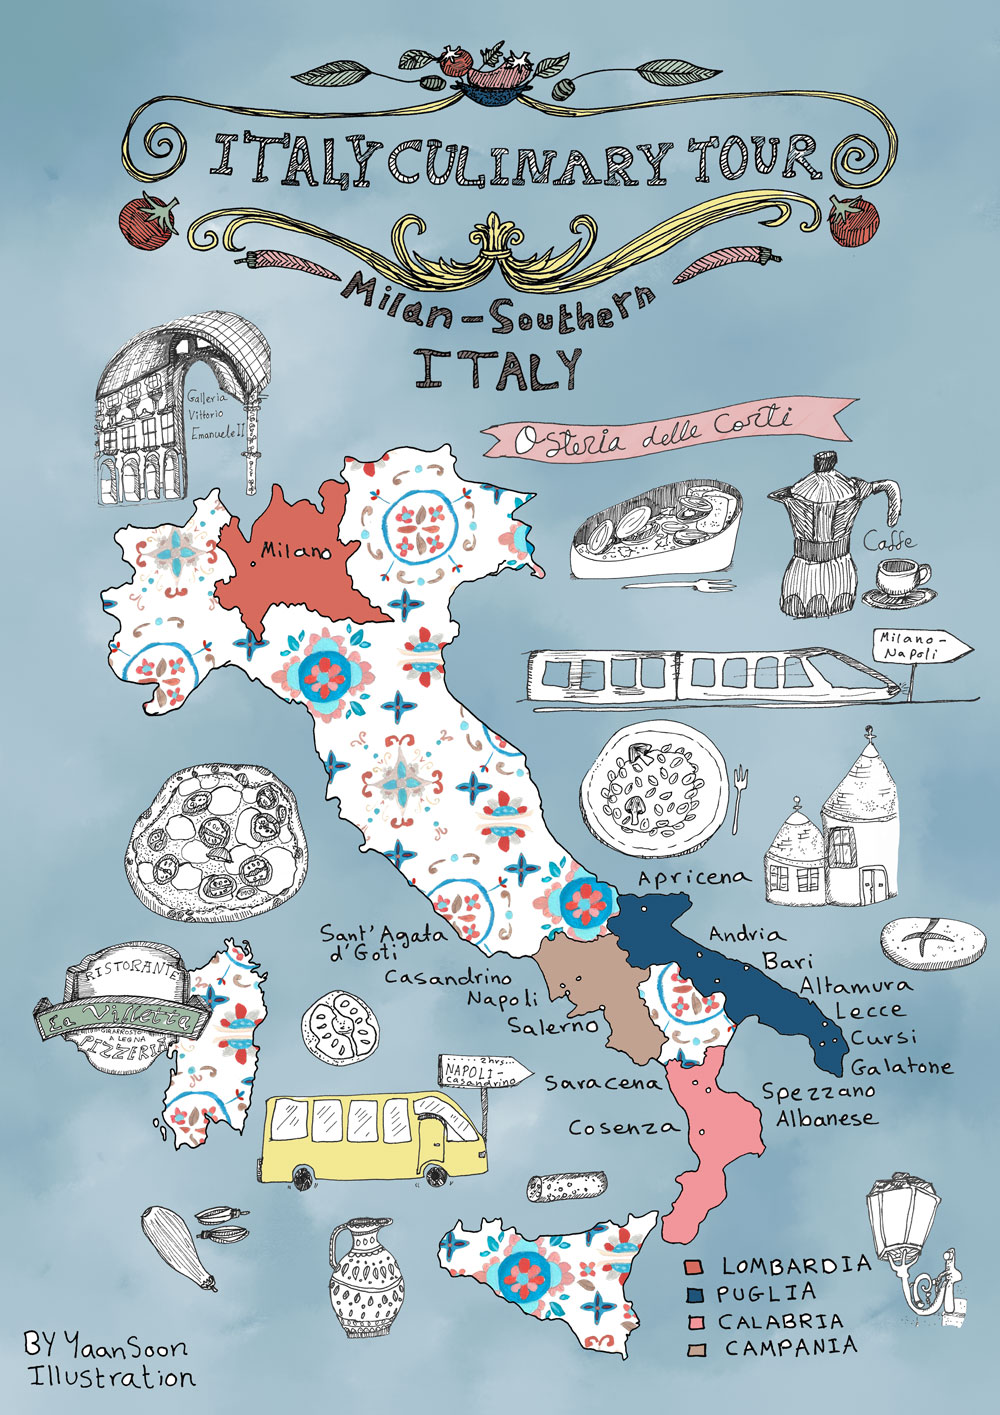 Italy Culinary Tour: A Foo's Illustrated Map of Italy ... on map art, map background, map making, map great britain, map of california and mexico, map app, map clipart, product illustration, map of victoria, map paper, map travel, map books, map of the south sewanee university, digital illustration, map cartoon, map of belfast and surrounding areas, map of spanish speaking world, map key, technical illustration, architectural illustration, medical illustration, map design, map of louisiana and mississippi, map infographic, map print,